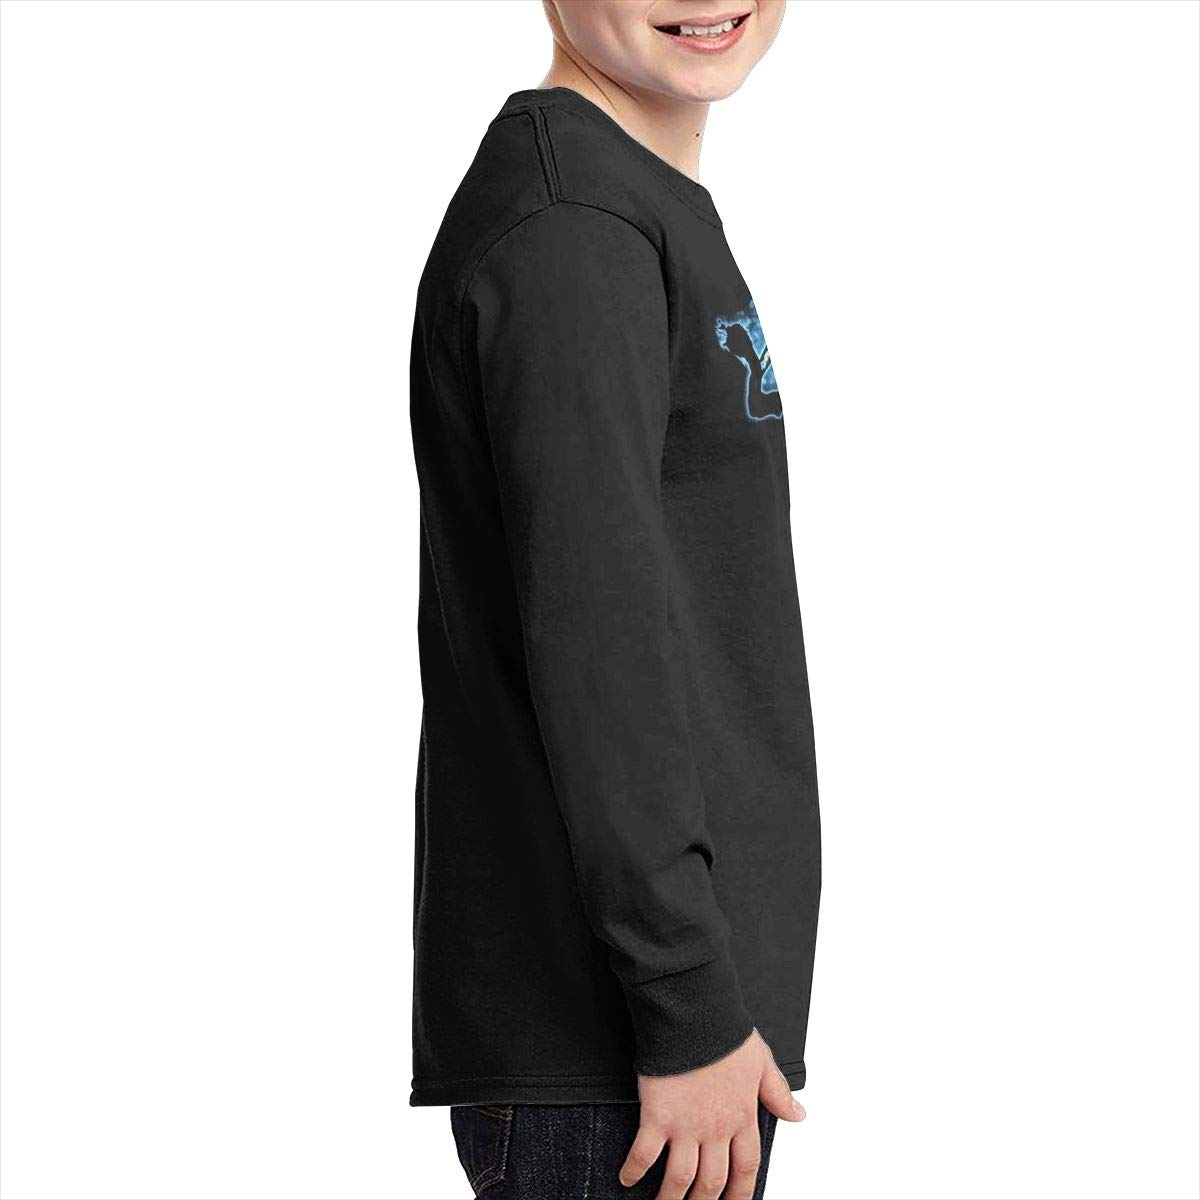 LisaCrocker Junior Long Sleeve T-Shirt Teenage Summer Boys Tee Shirt